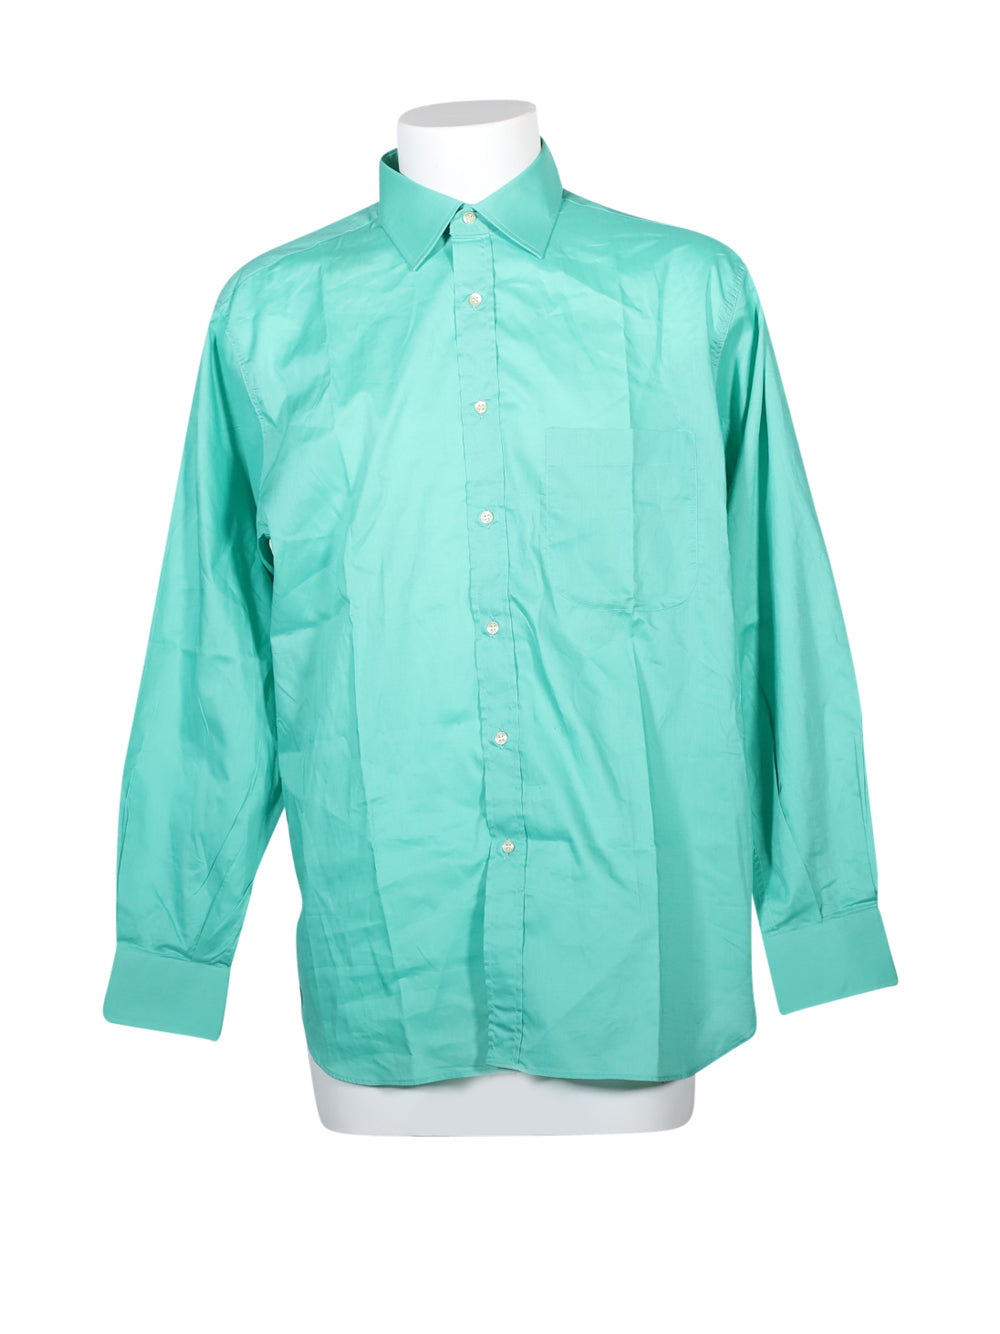 Front photo of Preloved Ingram Green Man's shirt - size 42/XL